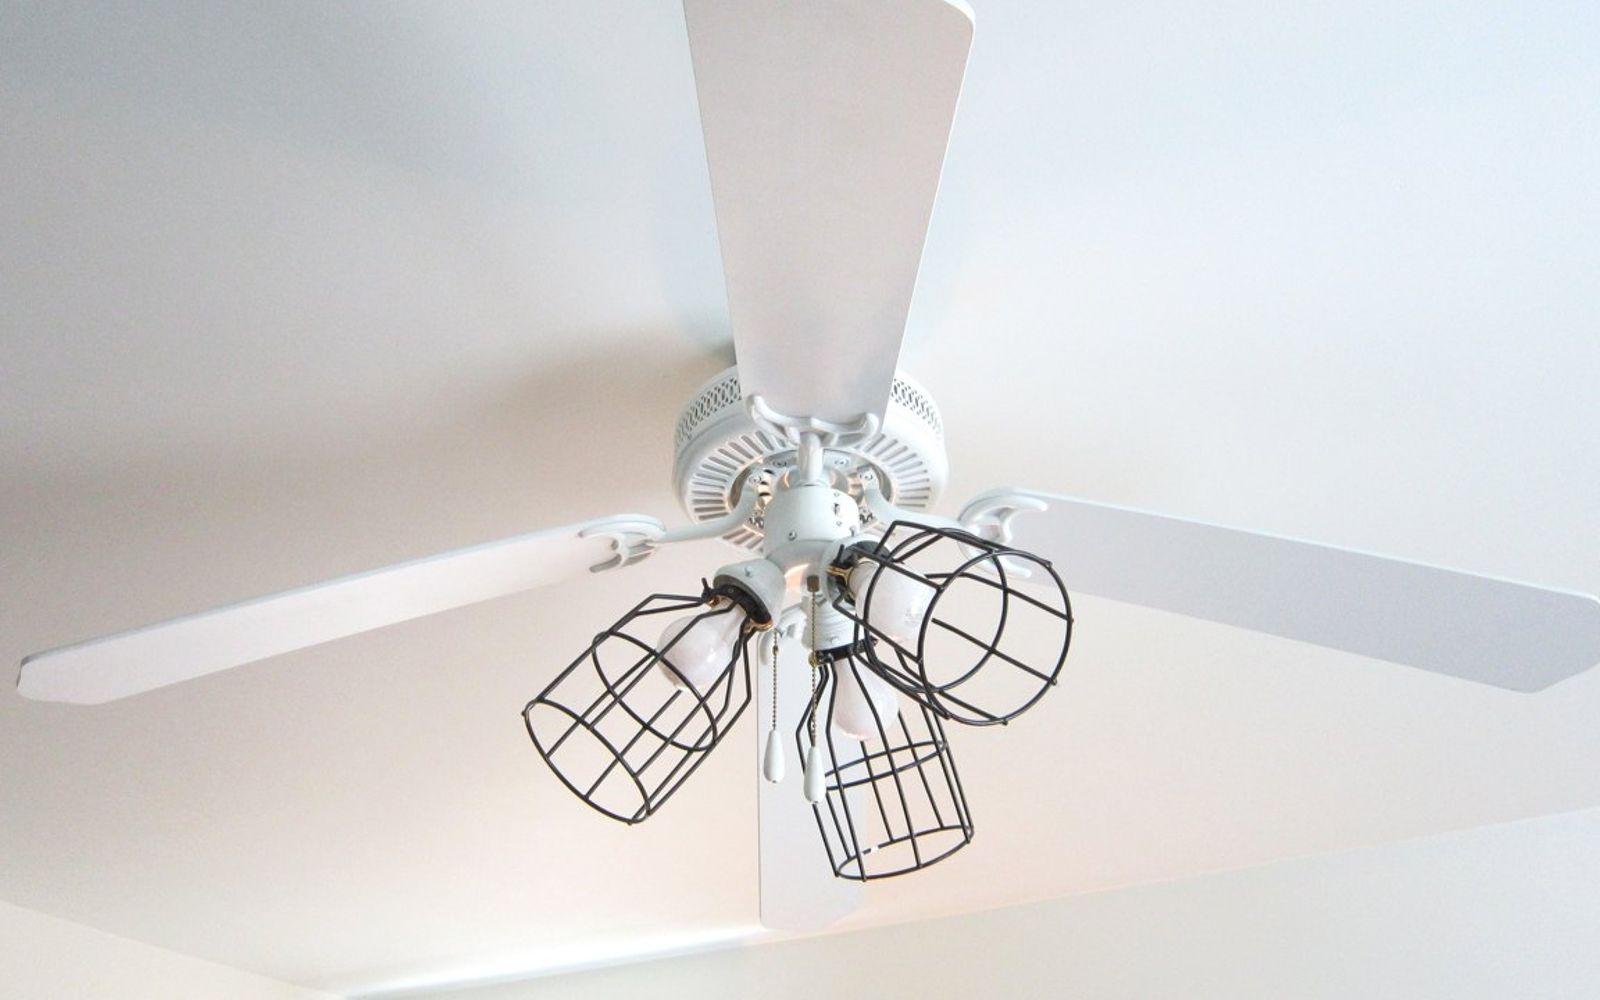 s 13 ways to upgrade your boring ceiling fan on a budget, appliances, wall decor, Update your lamp shades to a trendier style